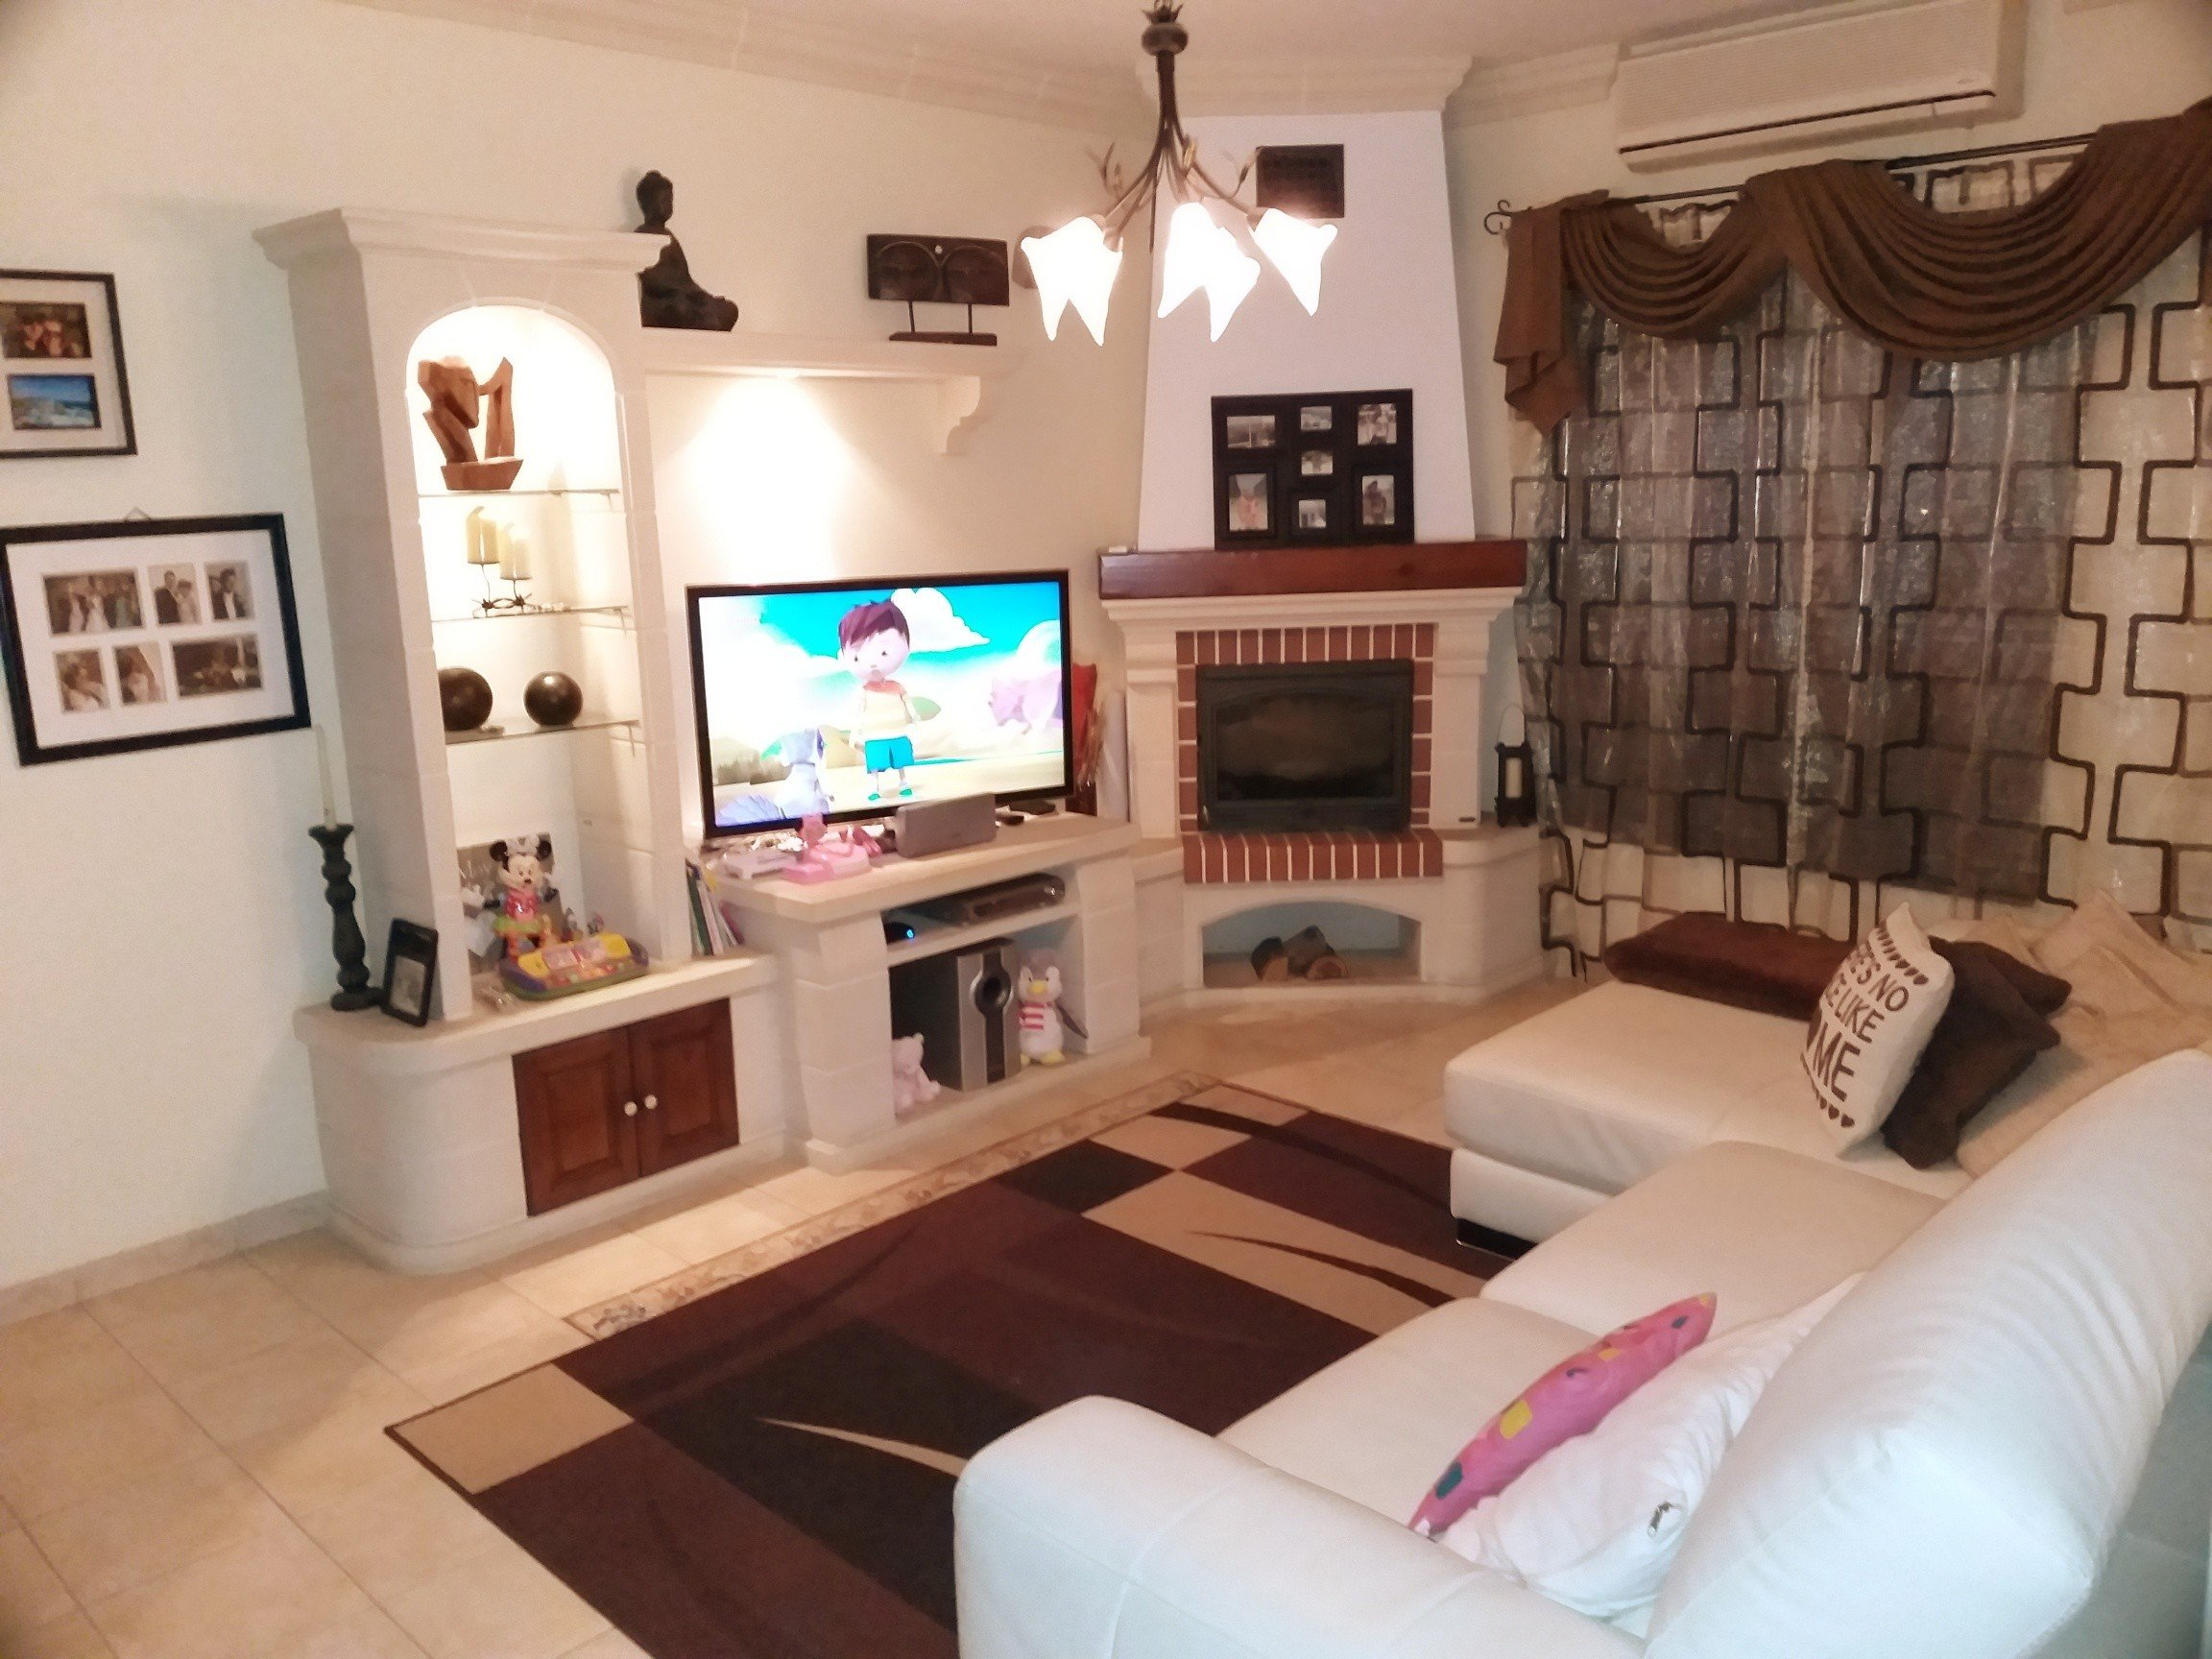 Property Malta: Living area